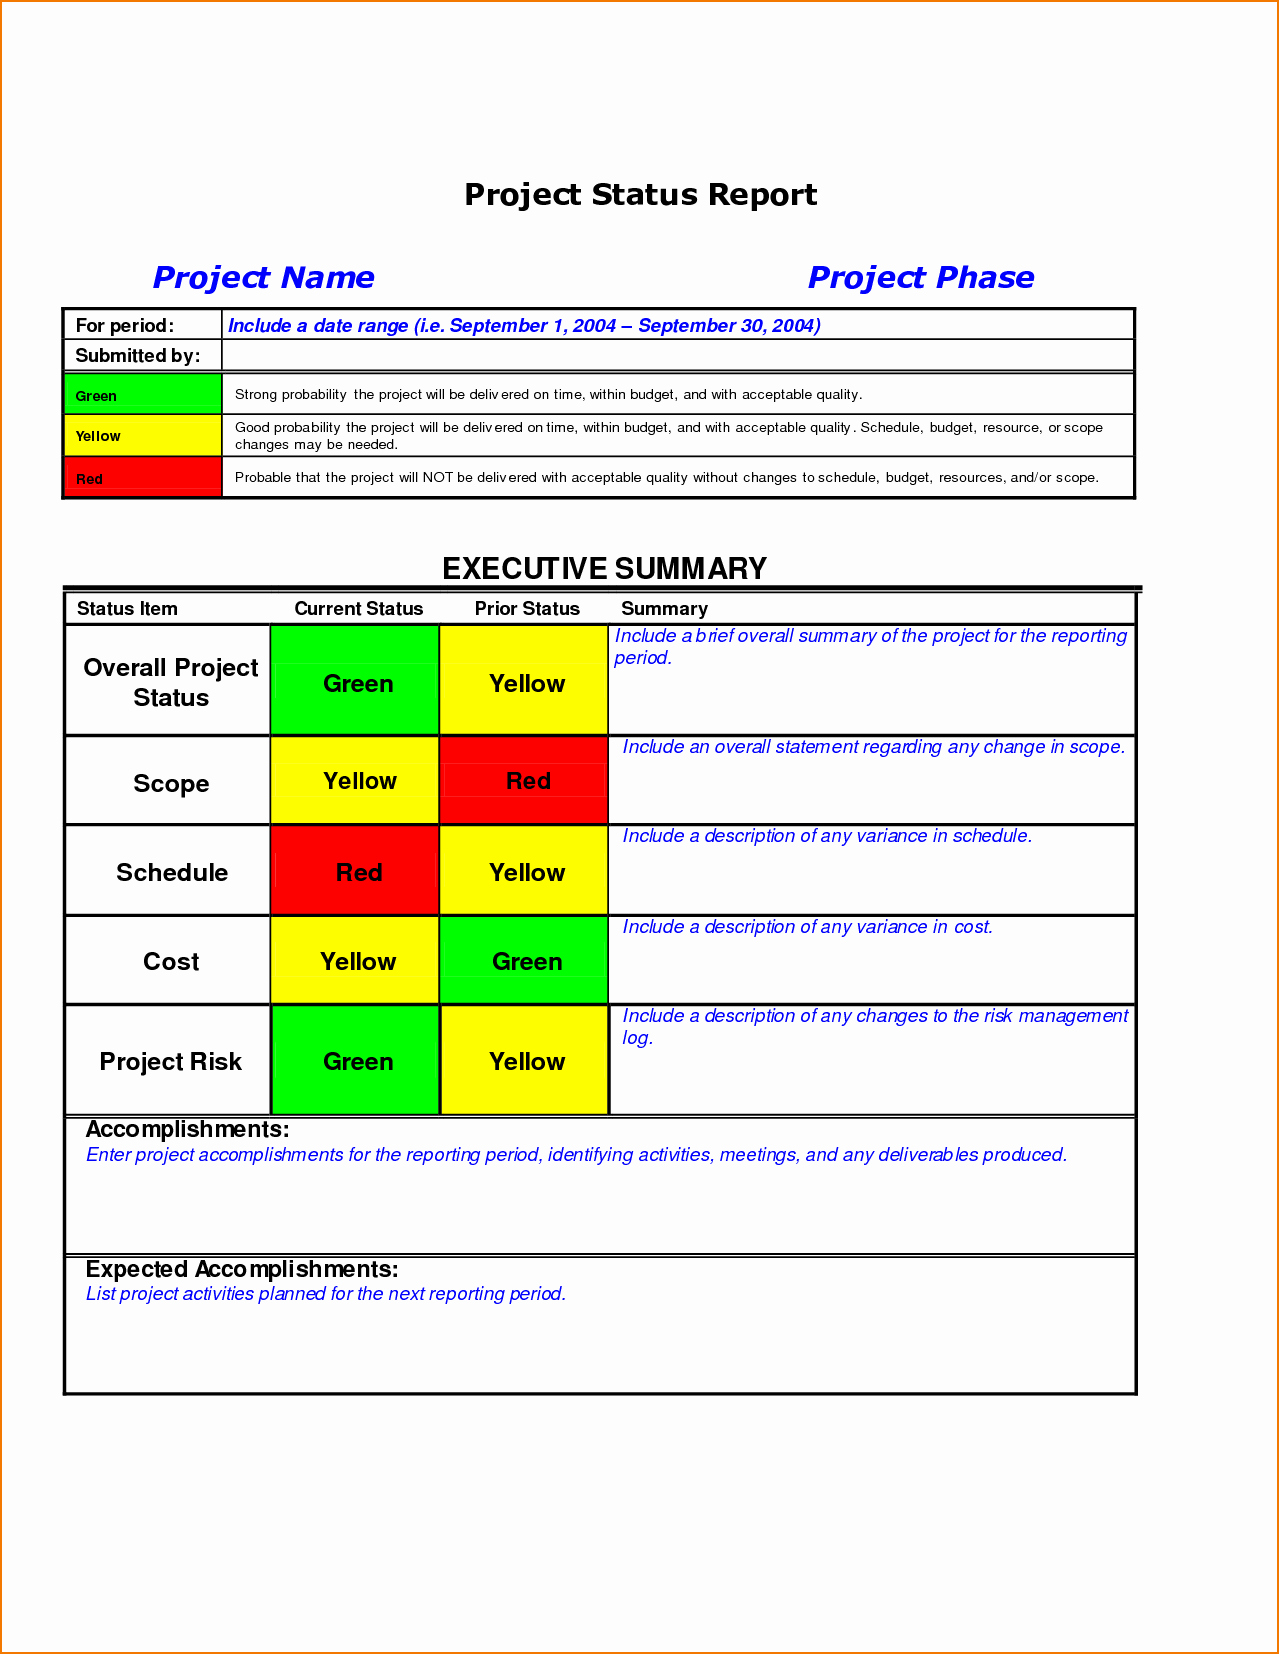 Project Status Report Template Excel Best Of 5 Project Status Report Template